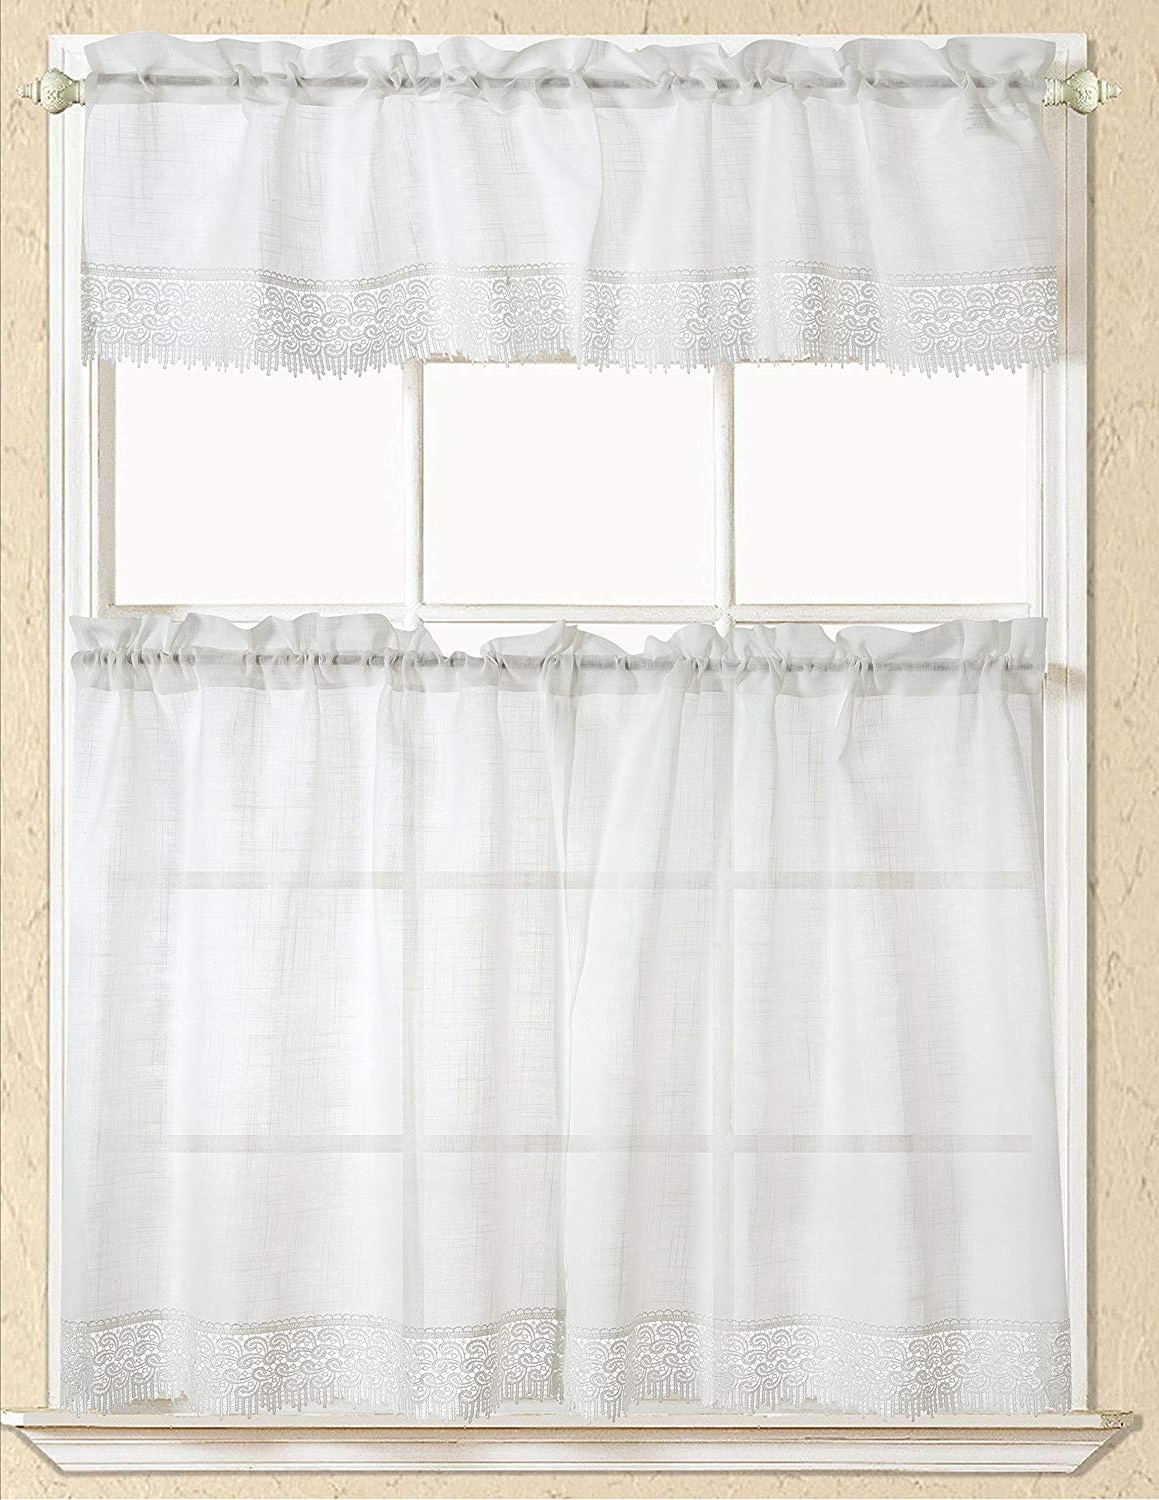 Fashionable Rt Designers Collection Evie Macrame Kitchen Curtain Tier And Valance Set, White Intended For Urban Embroidered Tier And Valance Kitchen Curtain Tier Sets (View 19 of 20)